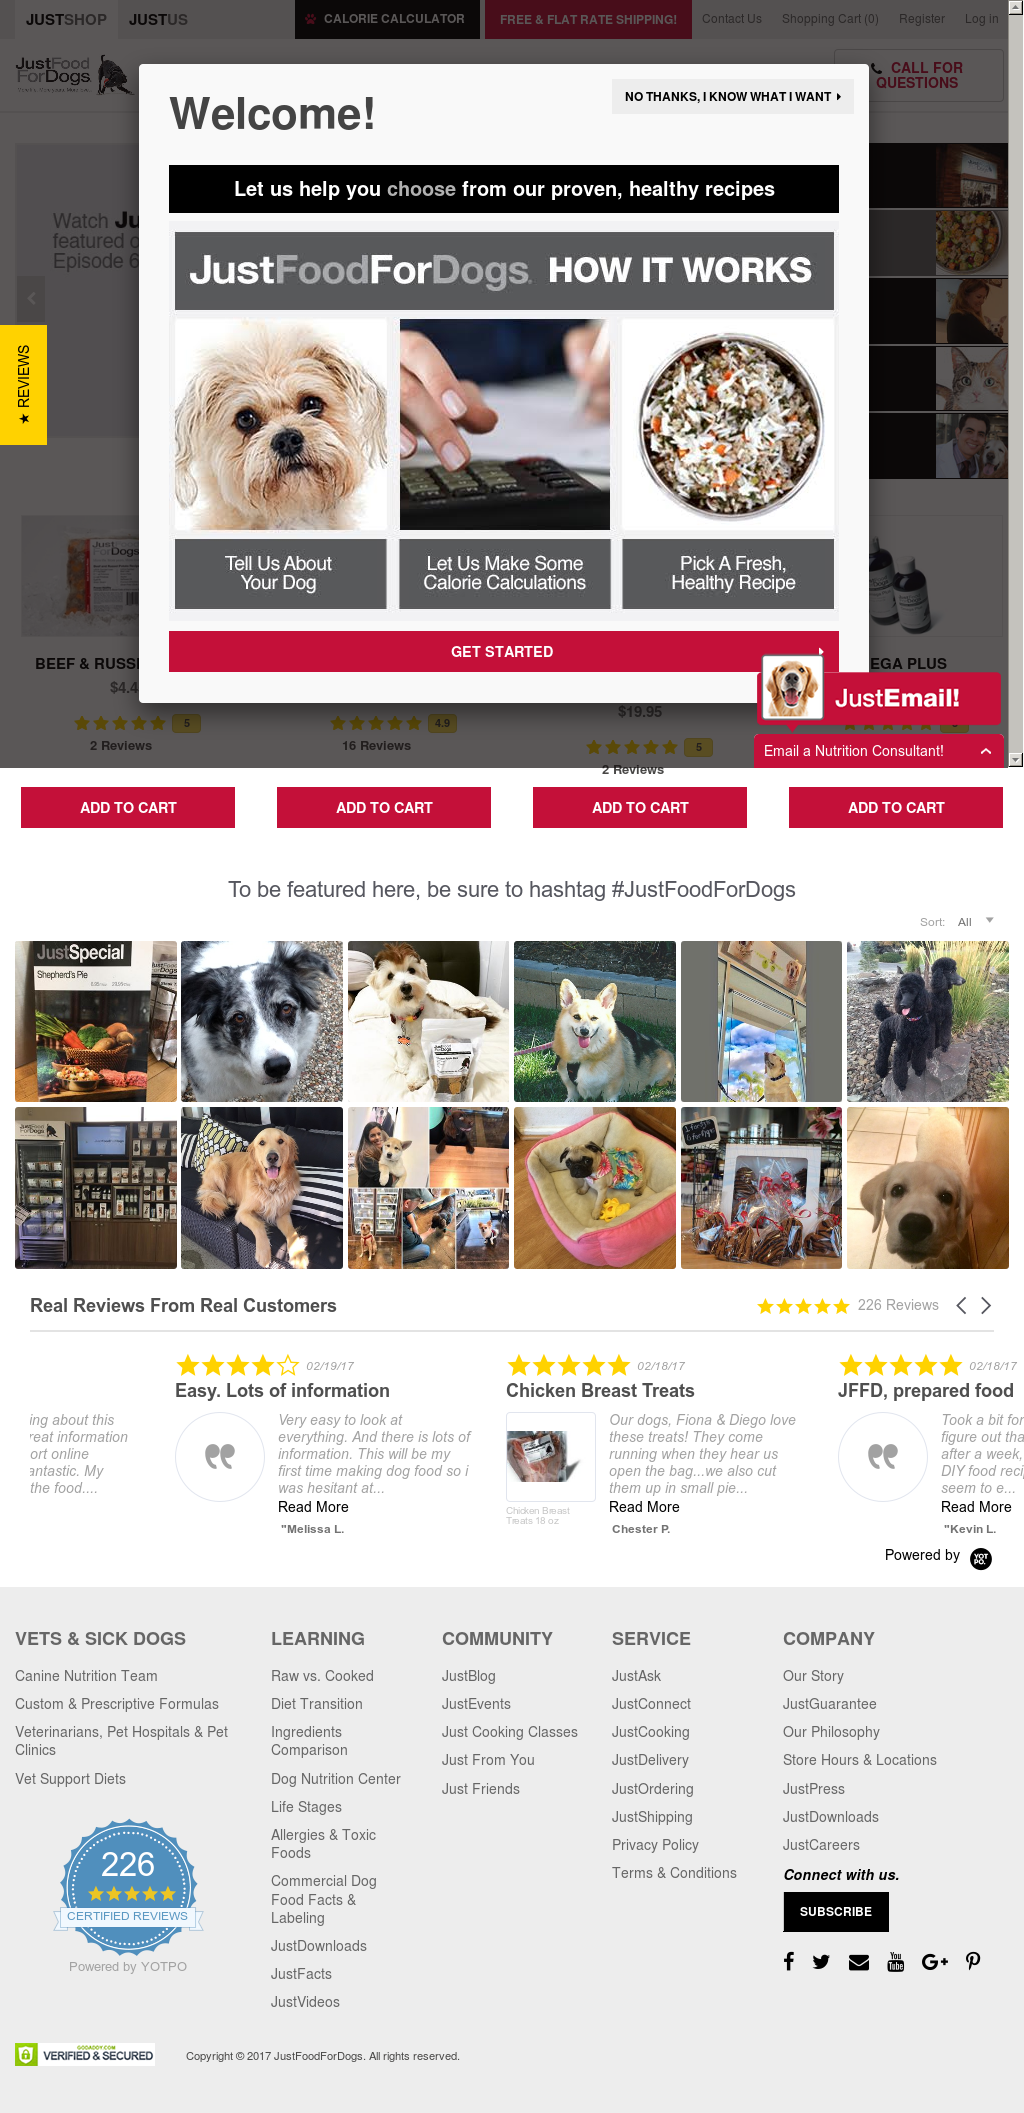 JustFoodForDogs Competitors, Revenue and Employees - Owler Company